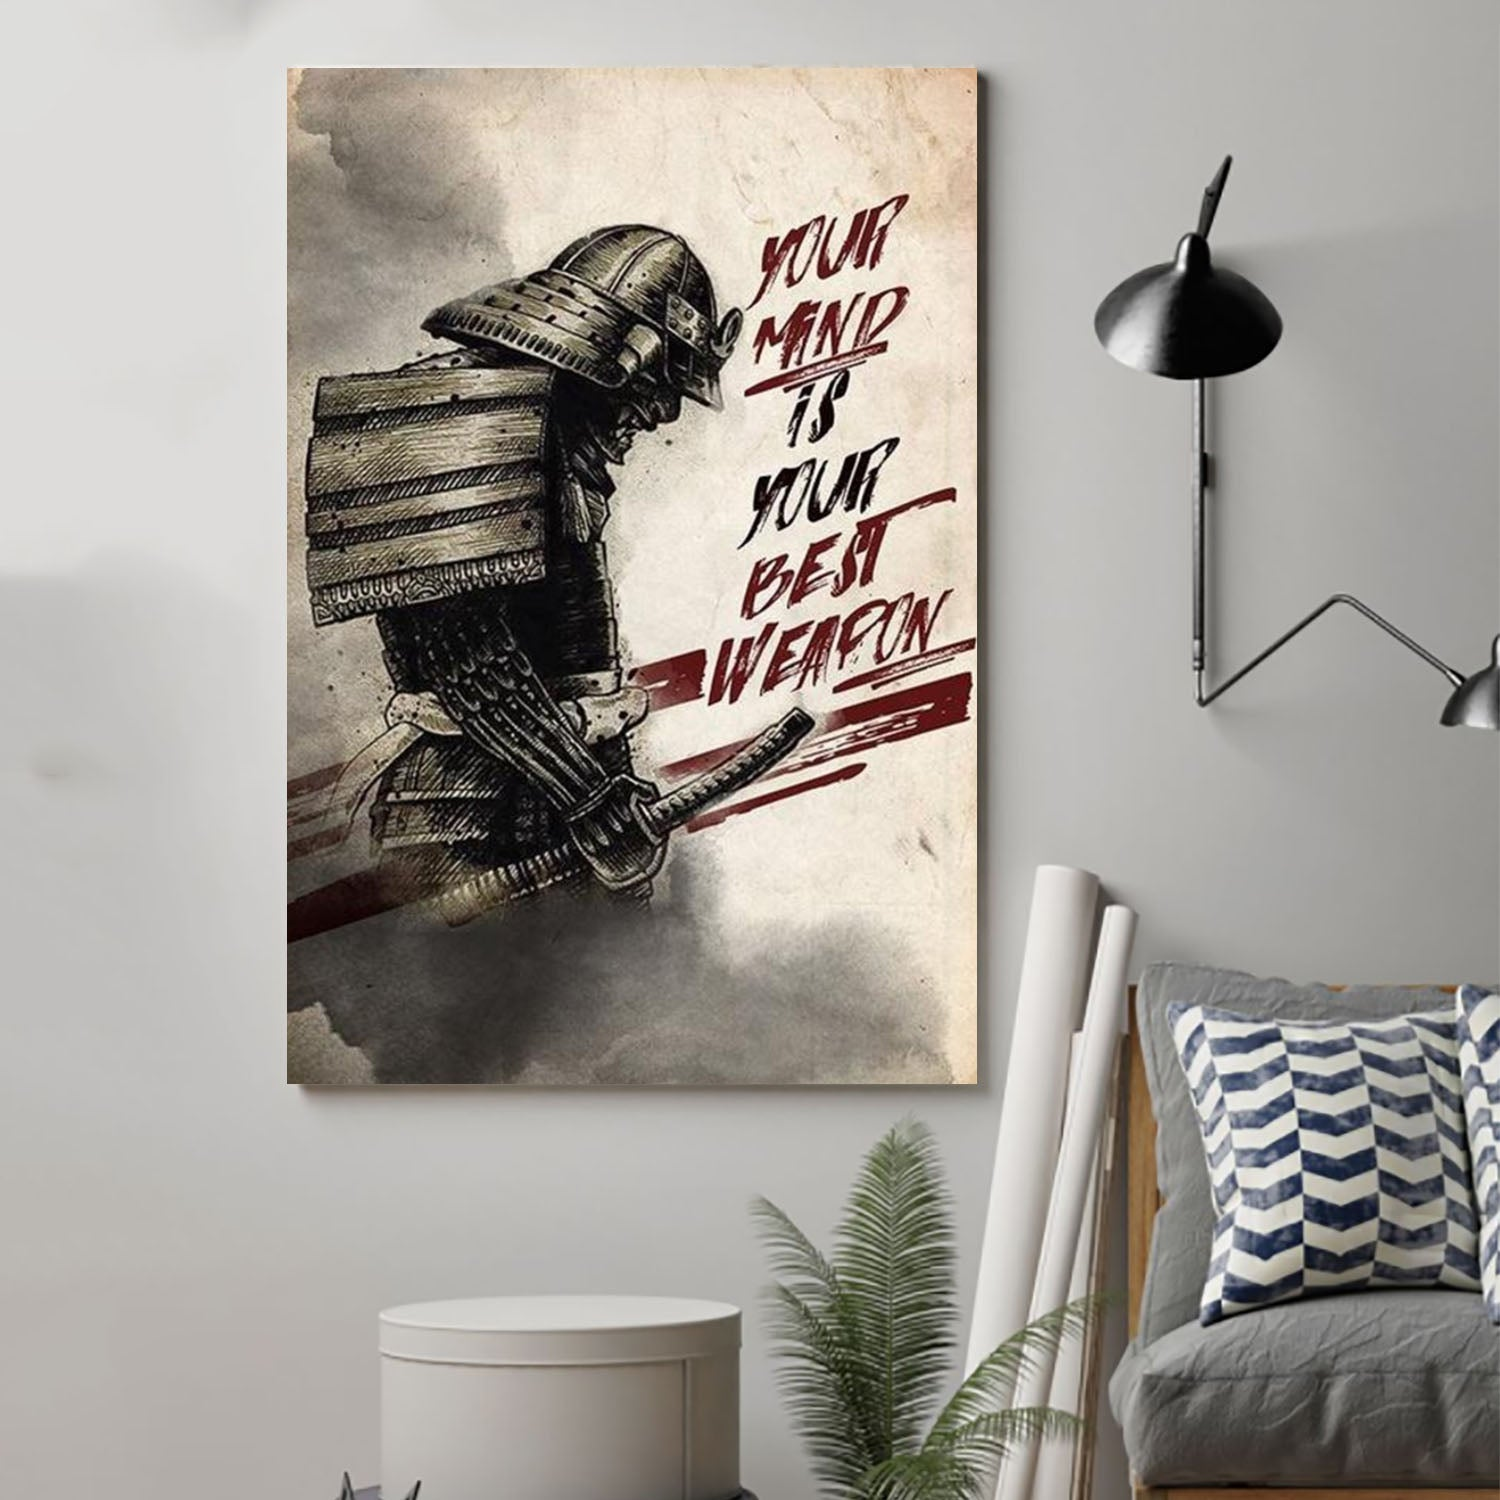 (cv323) Samurai Poster - Your mind is your best weapon